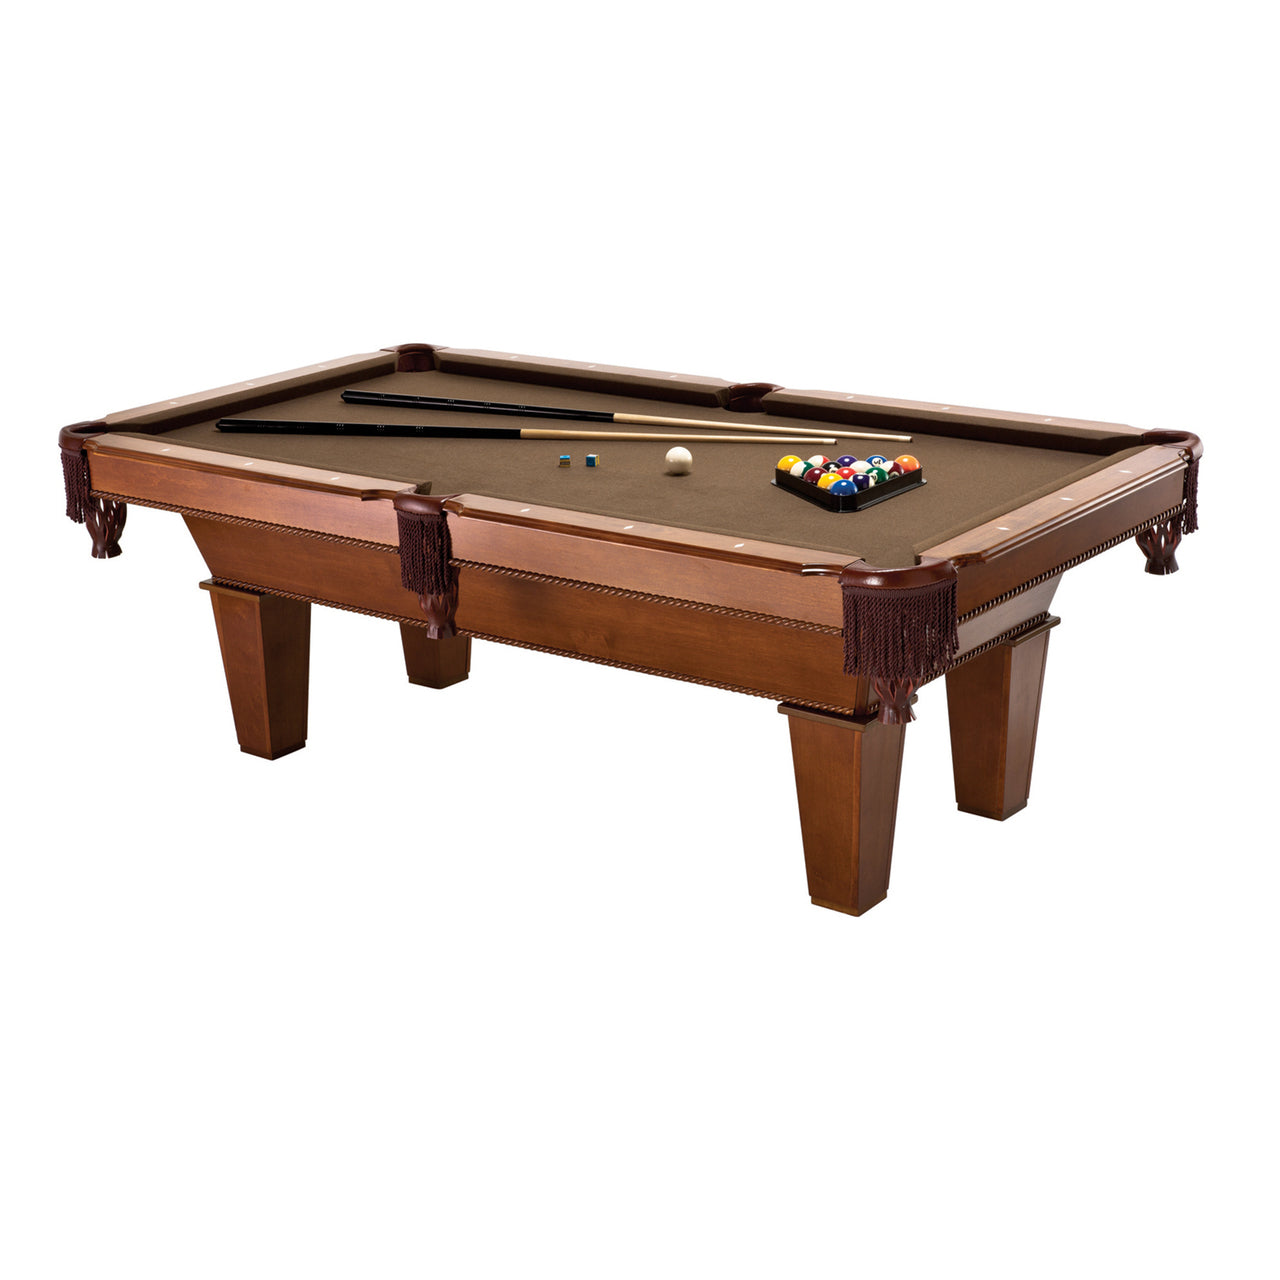 Frisco pool table